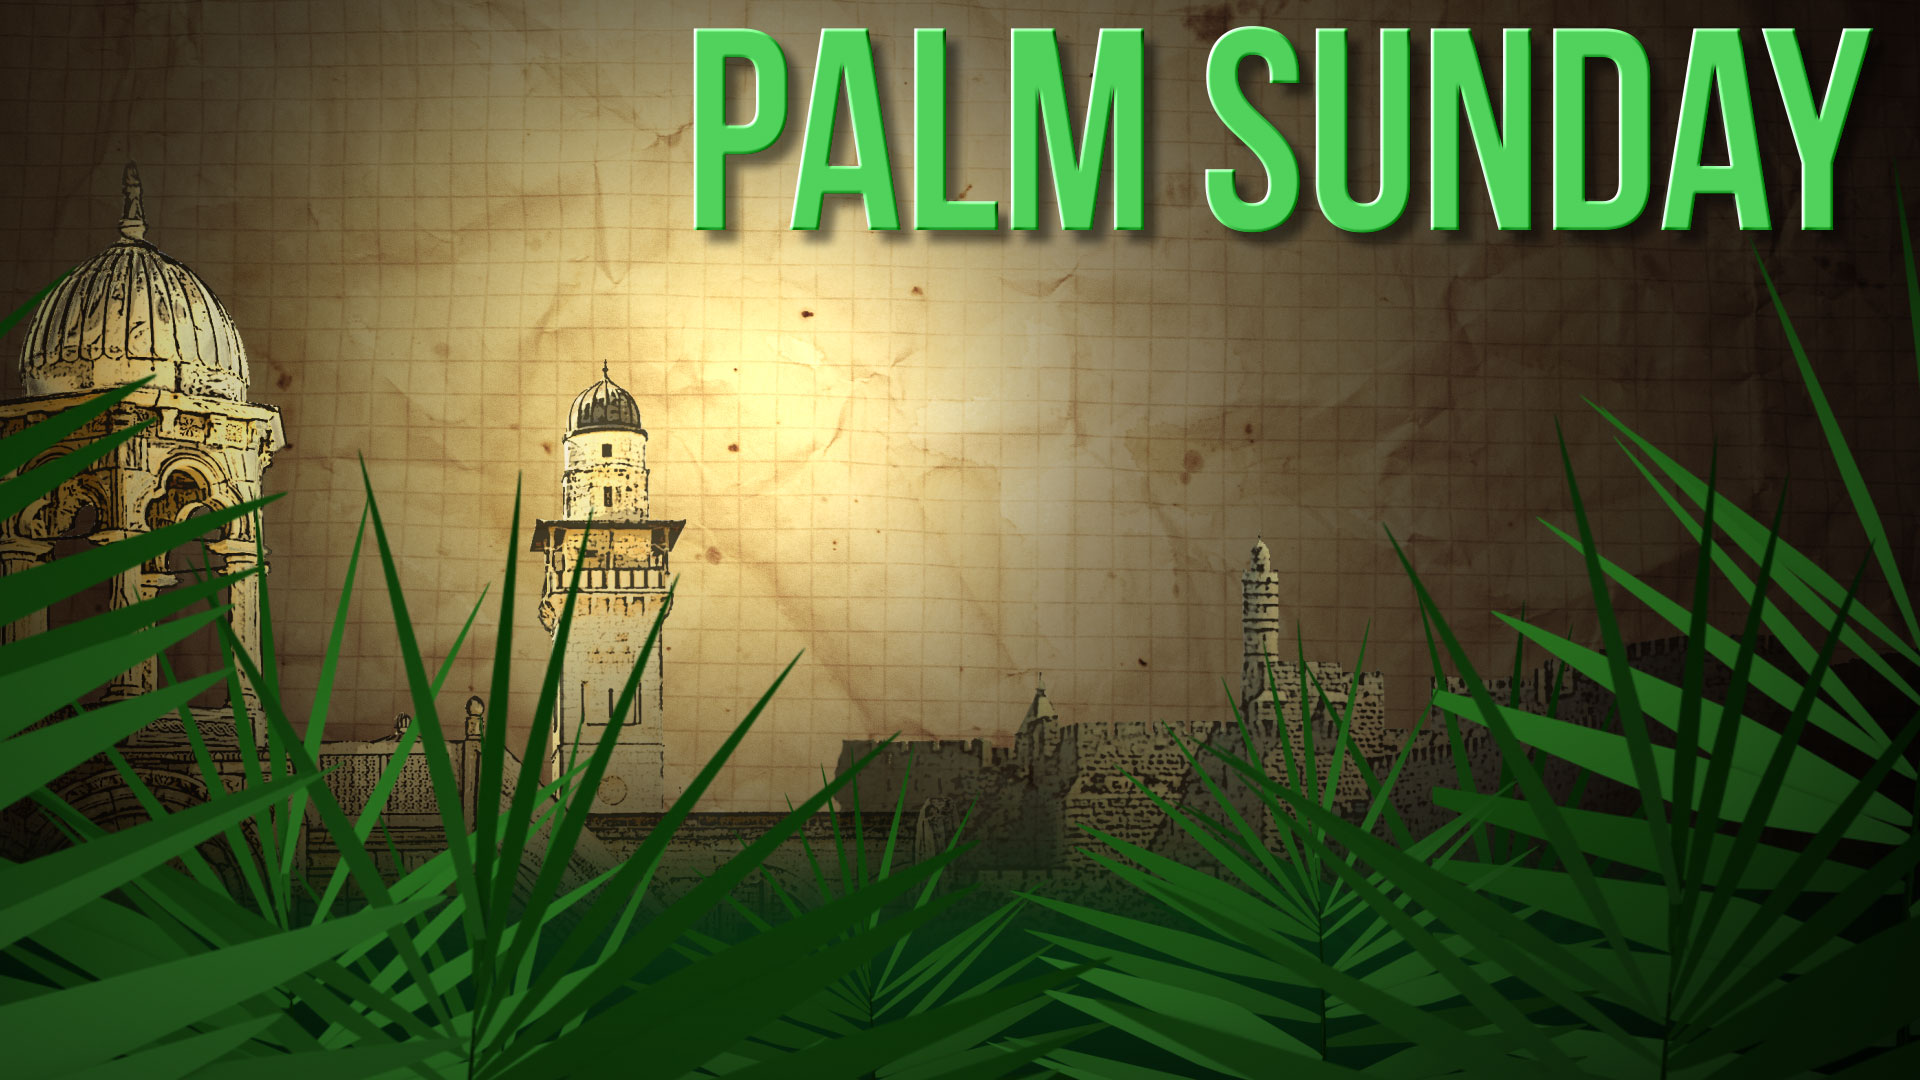 happy palm sunday greetings hosanna mobile pc background hd wallpaper